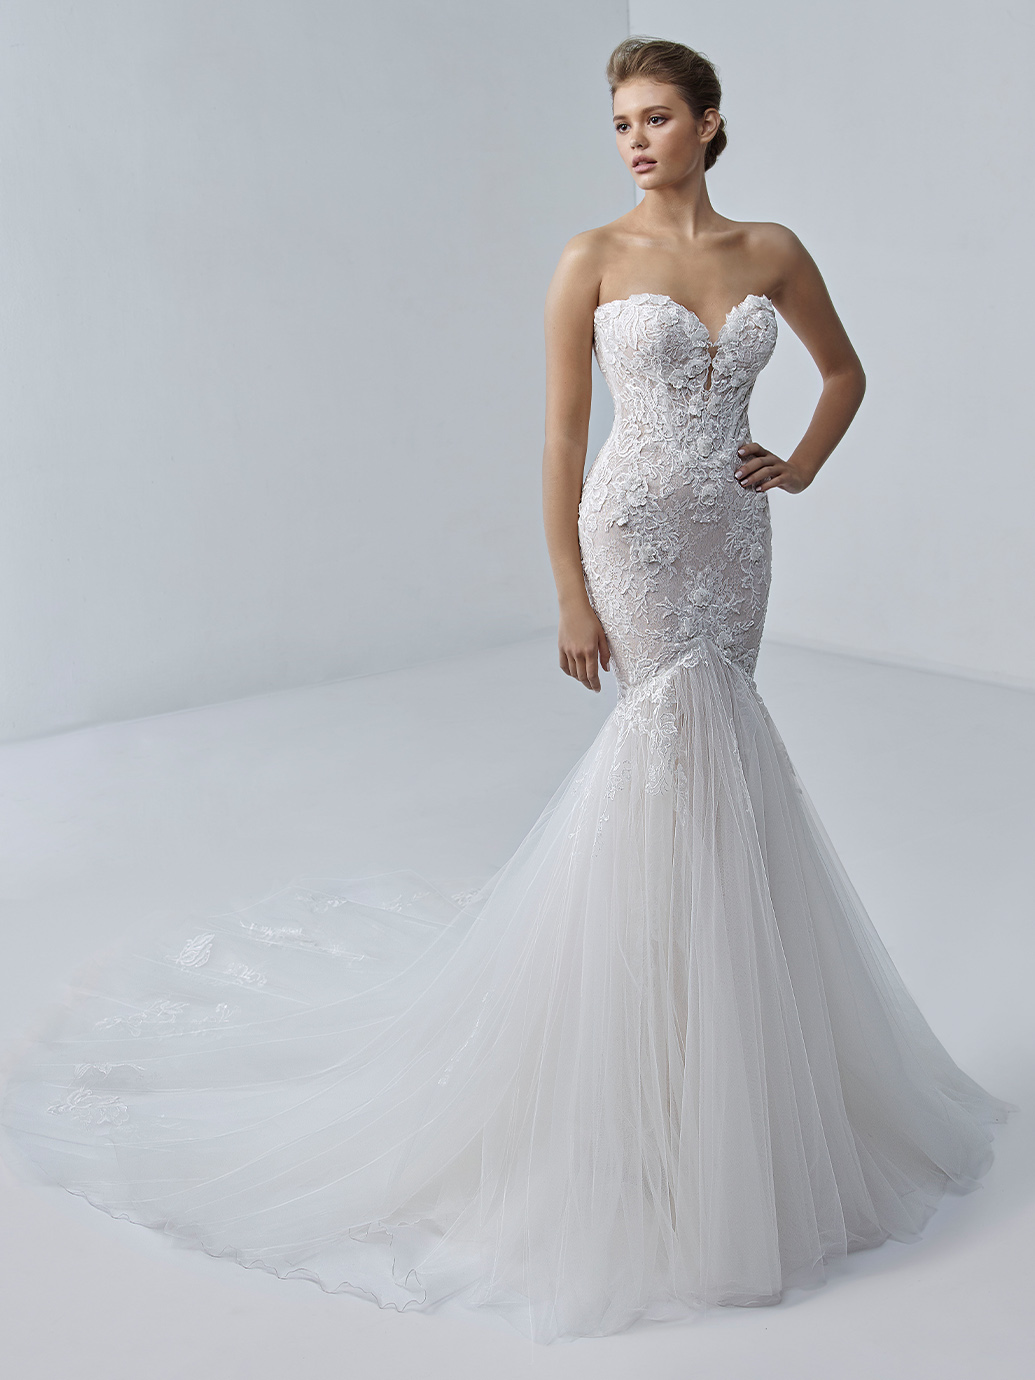 étoile-by-enzoani-2021-Dress-Finder-Angelique